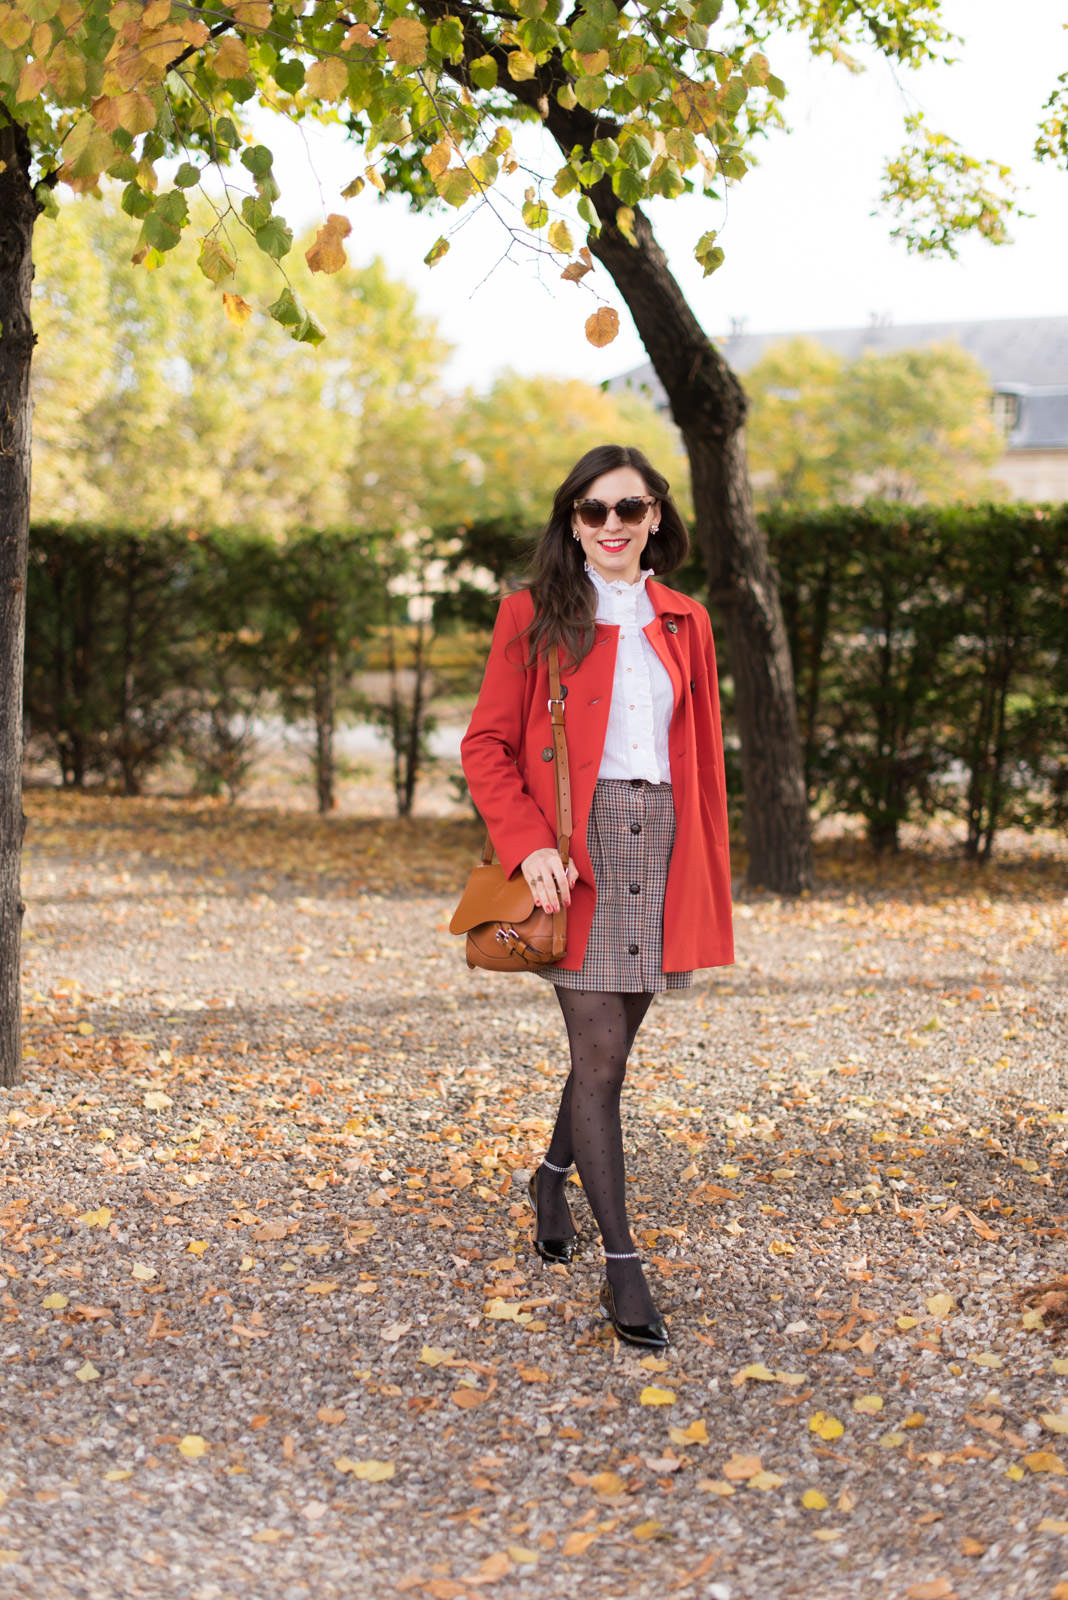 Blog-Mode-And-The-City-Looks-Les-Couleurs-Automne-3